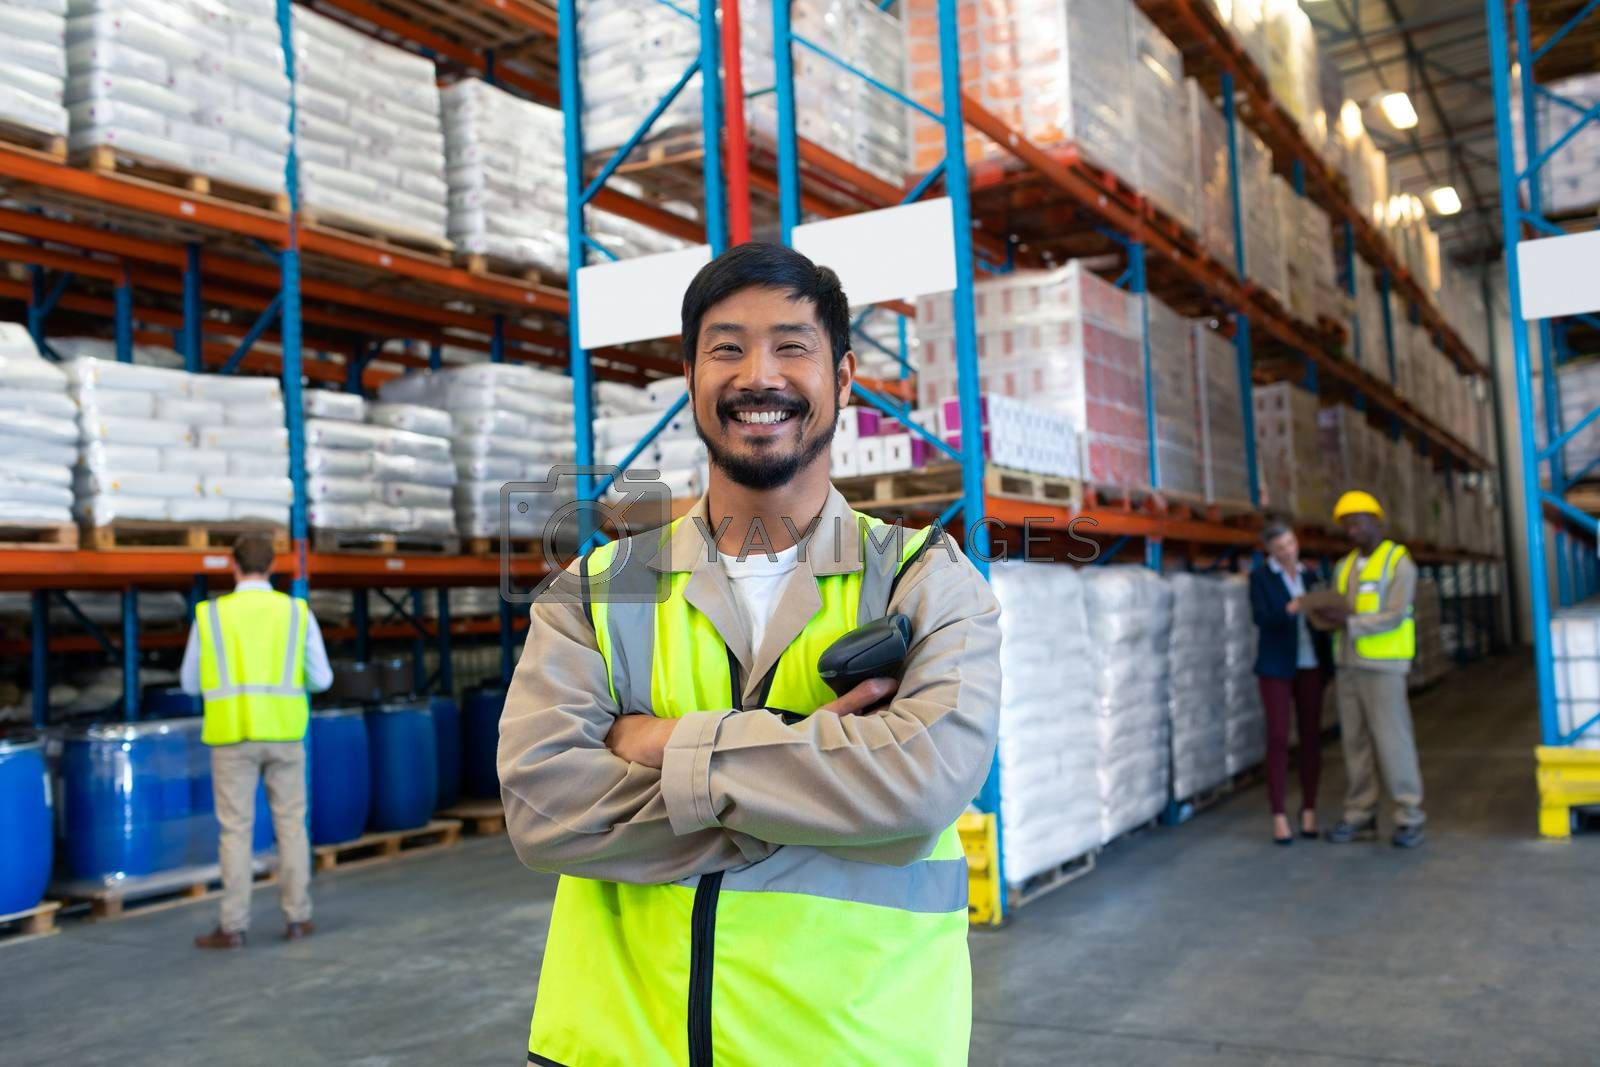 Front view of handsome Asian male worker standing with arms crossed and looking at camera in warehouse. Diverse colleagues working in the background. This is a freight transportation and distribution warehouse. Industrial and industrial workers concept